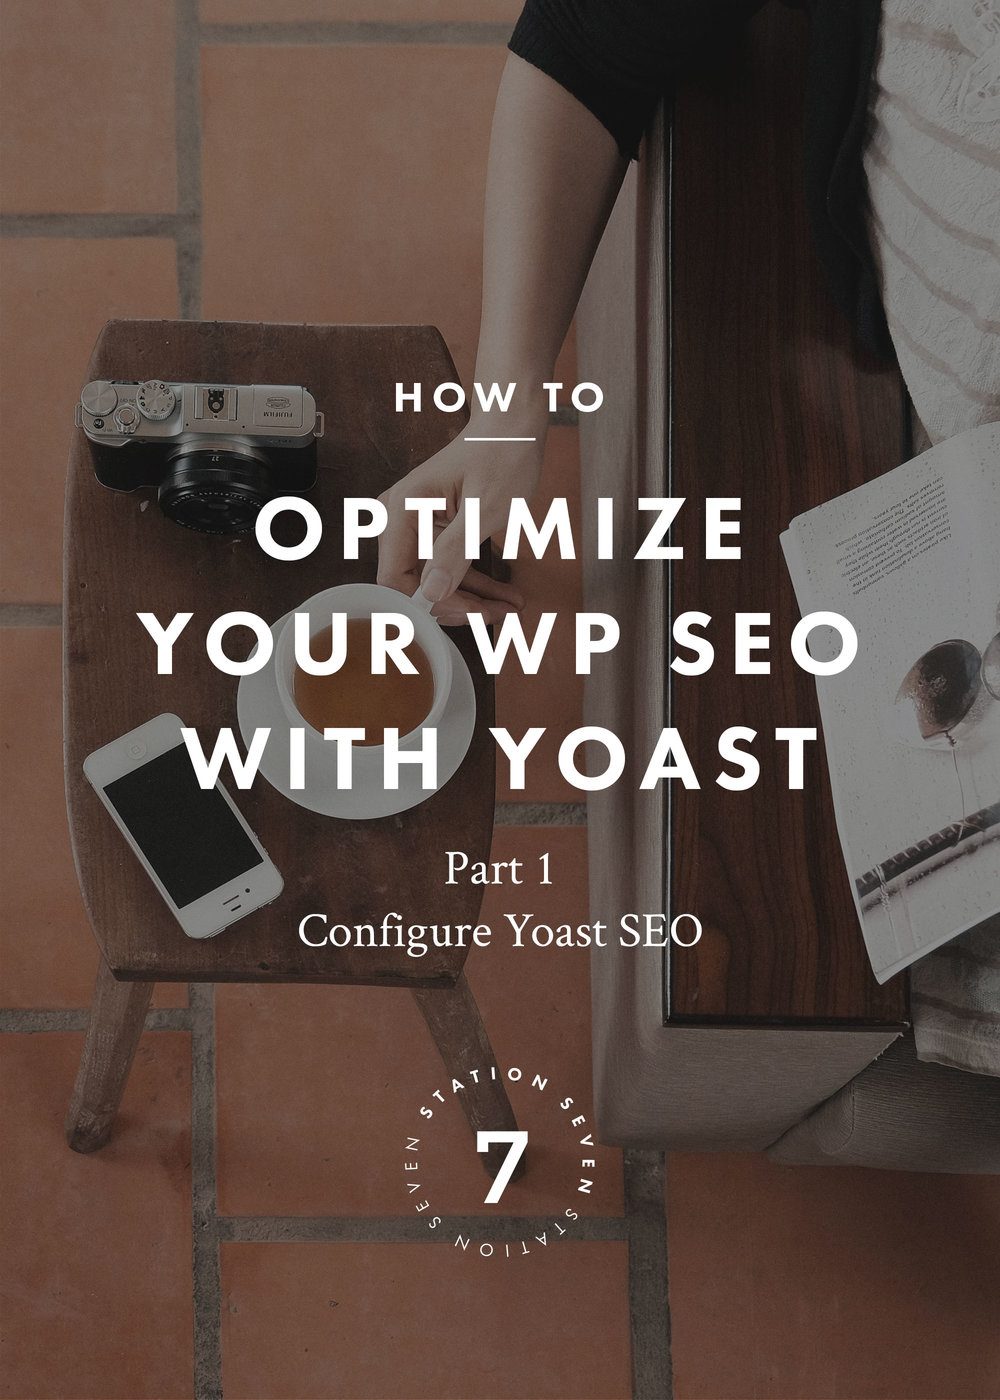 How to Optimize your WordPress SEO with Yoast.jpeg